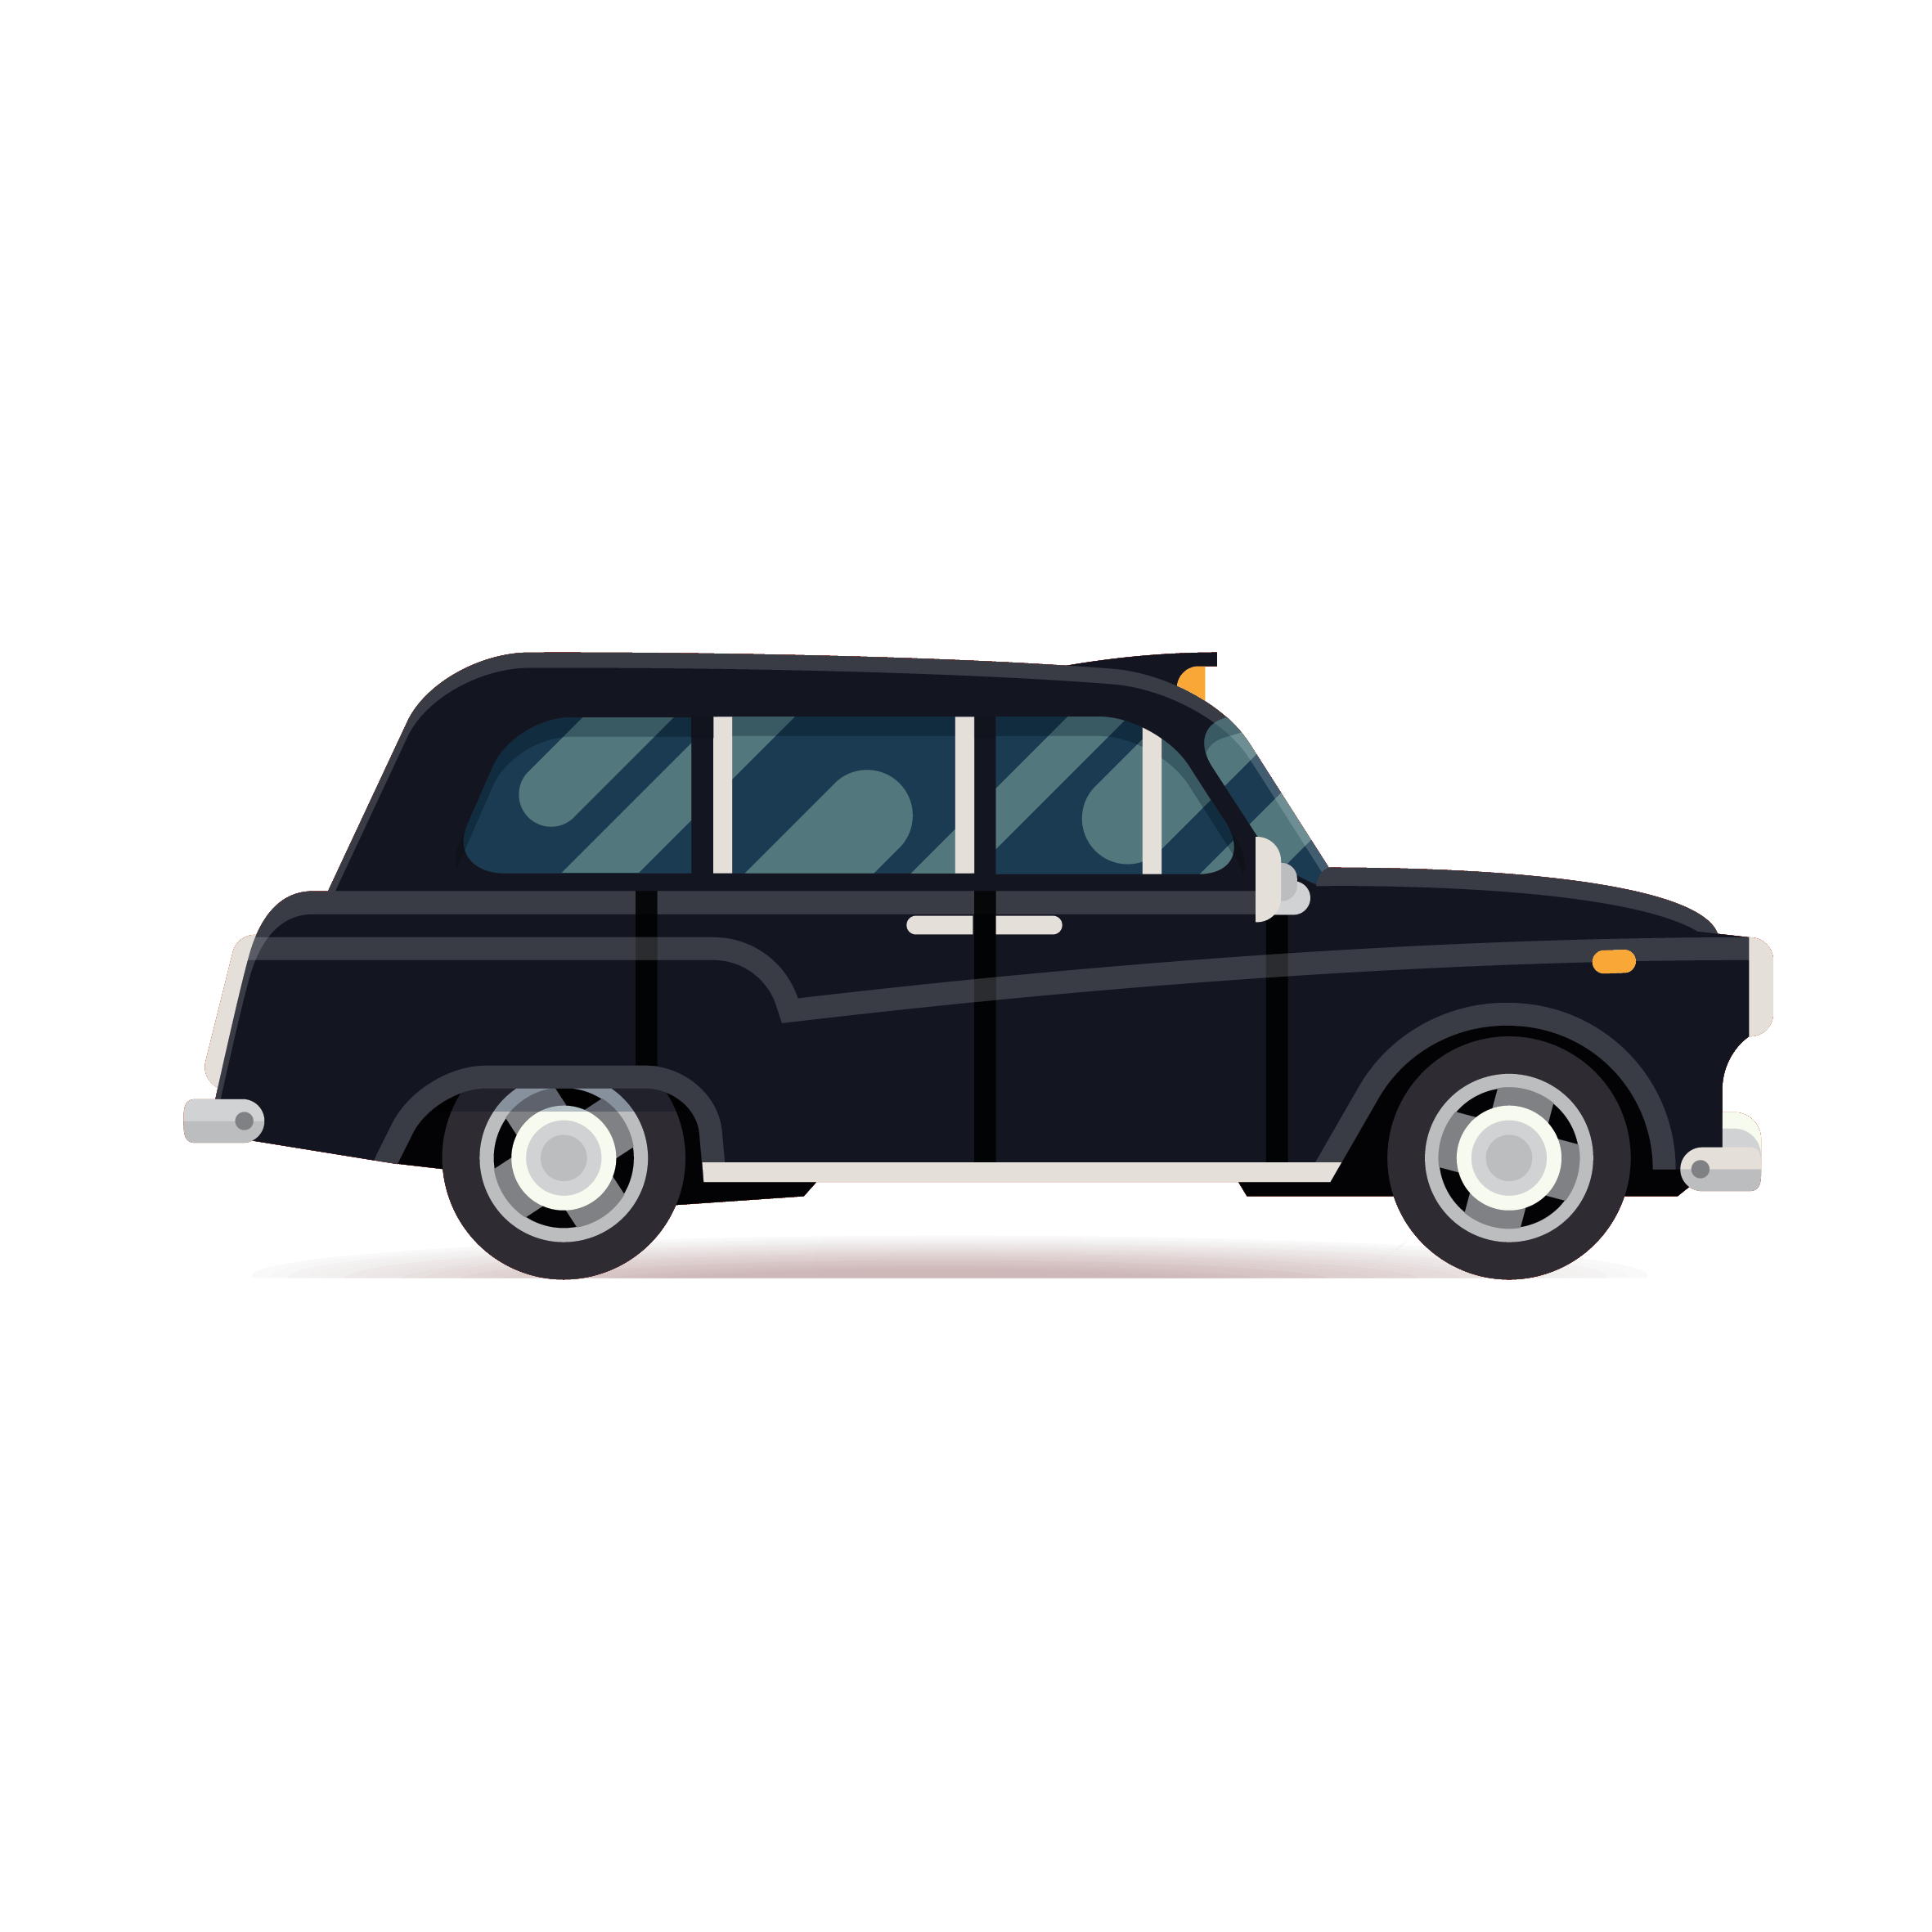 Our JUSTdrive taxi app connects black cabs with their customers at an affordable price.